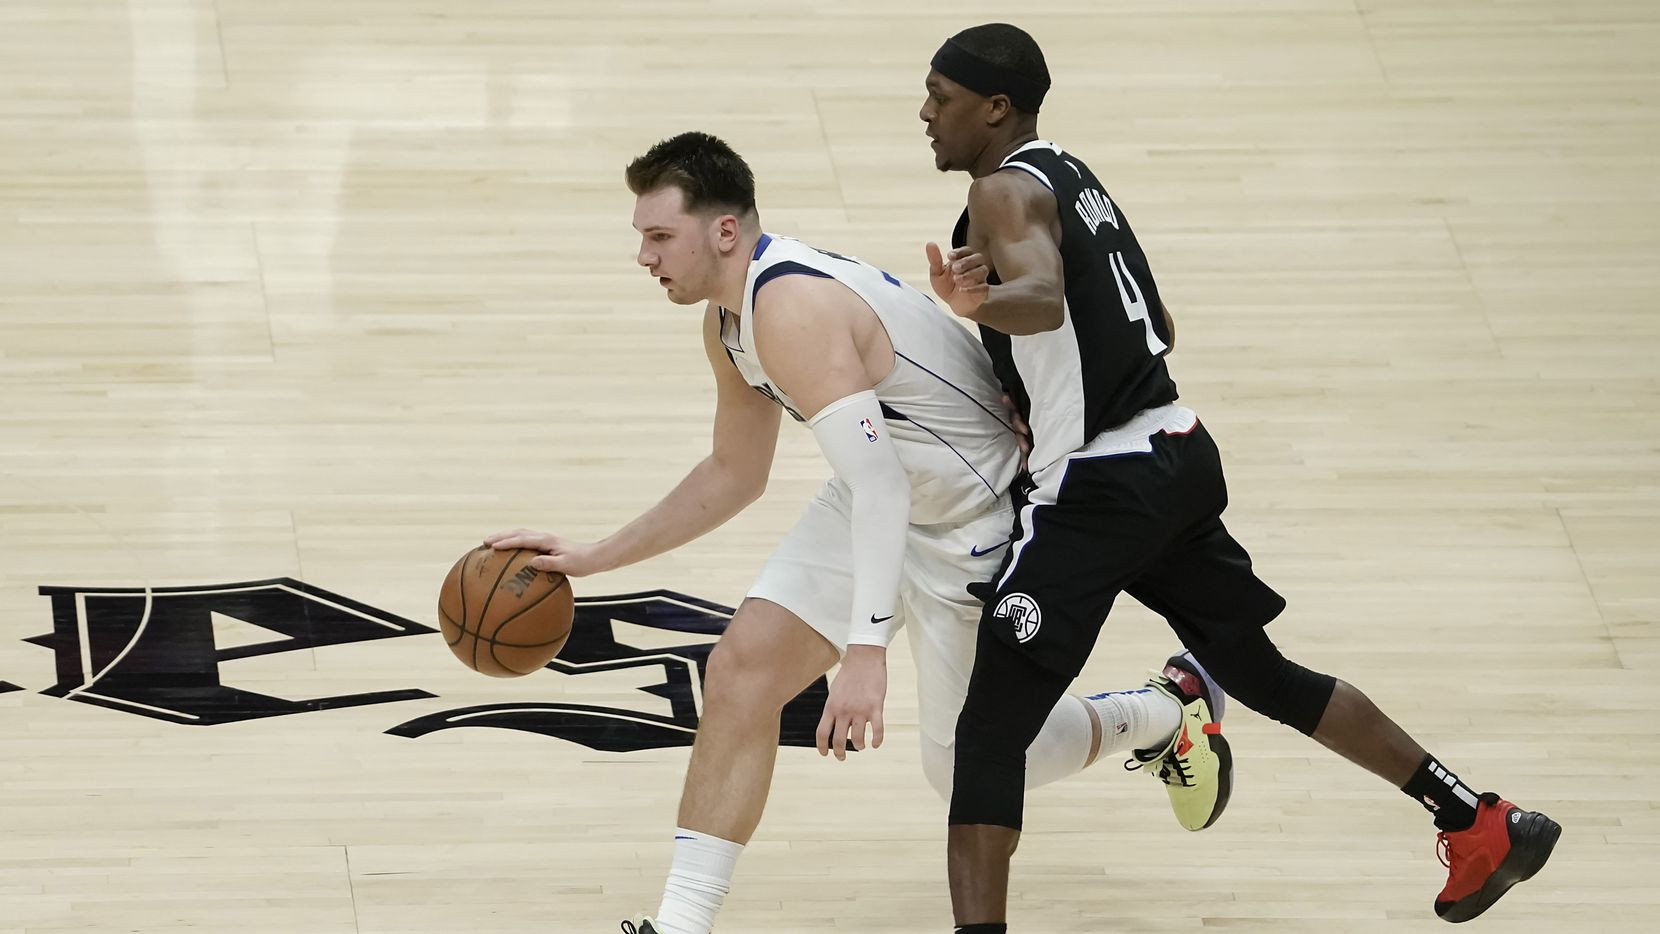 Dallas Mavericks guard Luka Doncic (77) gets past LA Clippers guard Rajon Rondo (4) during the second half of an NBA playoff basketball game at Staples Center on Saturday, May 22, 2021, in Los Angeles. The Mavericks won the game 113-103.